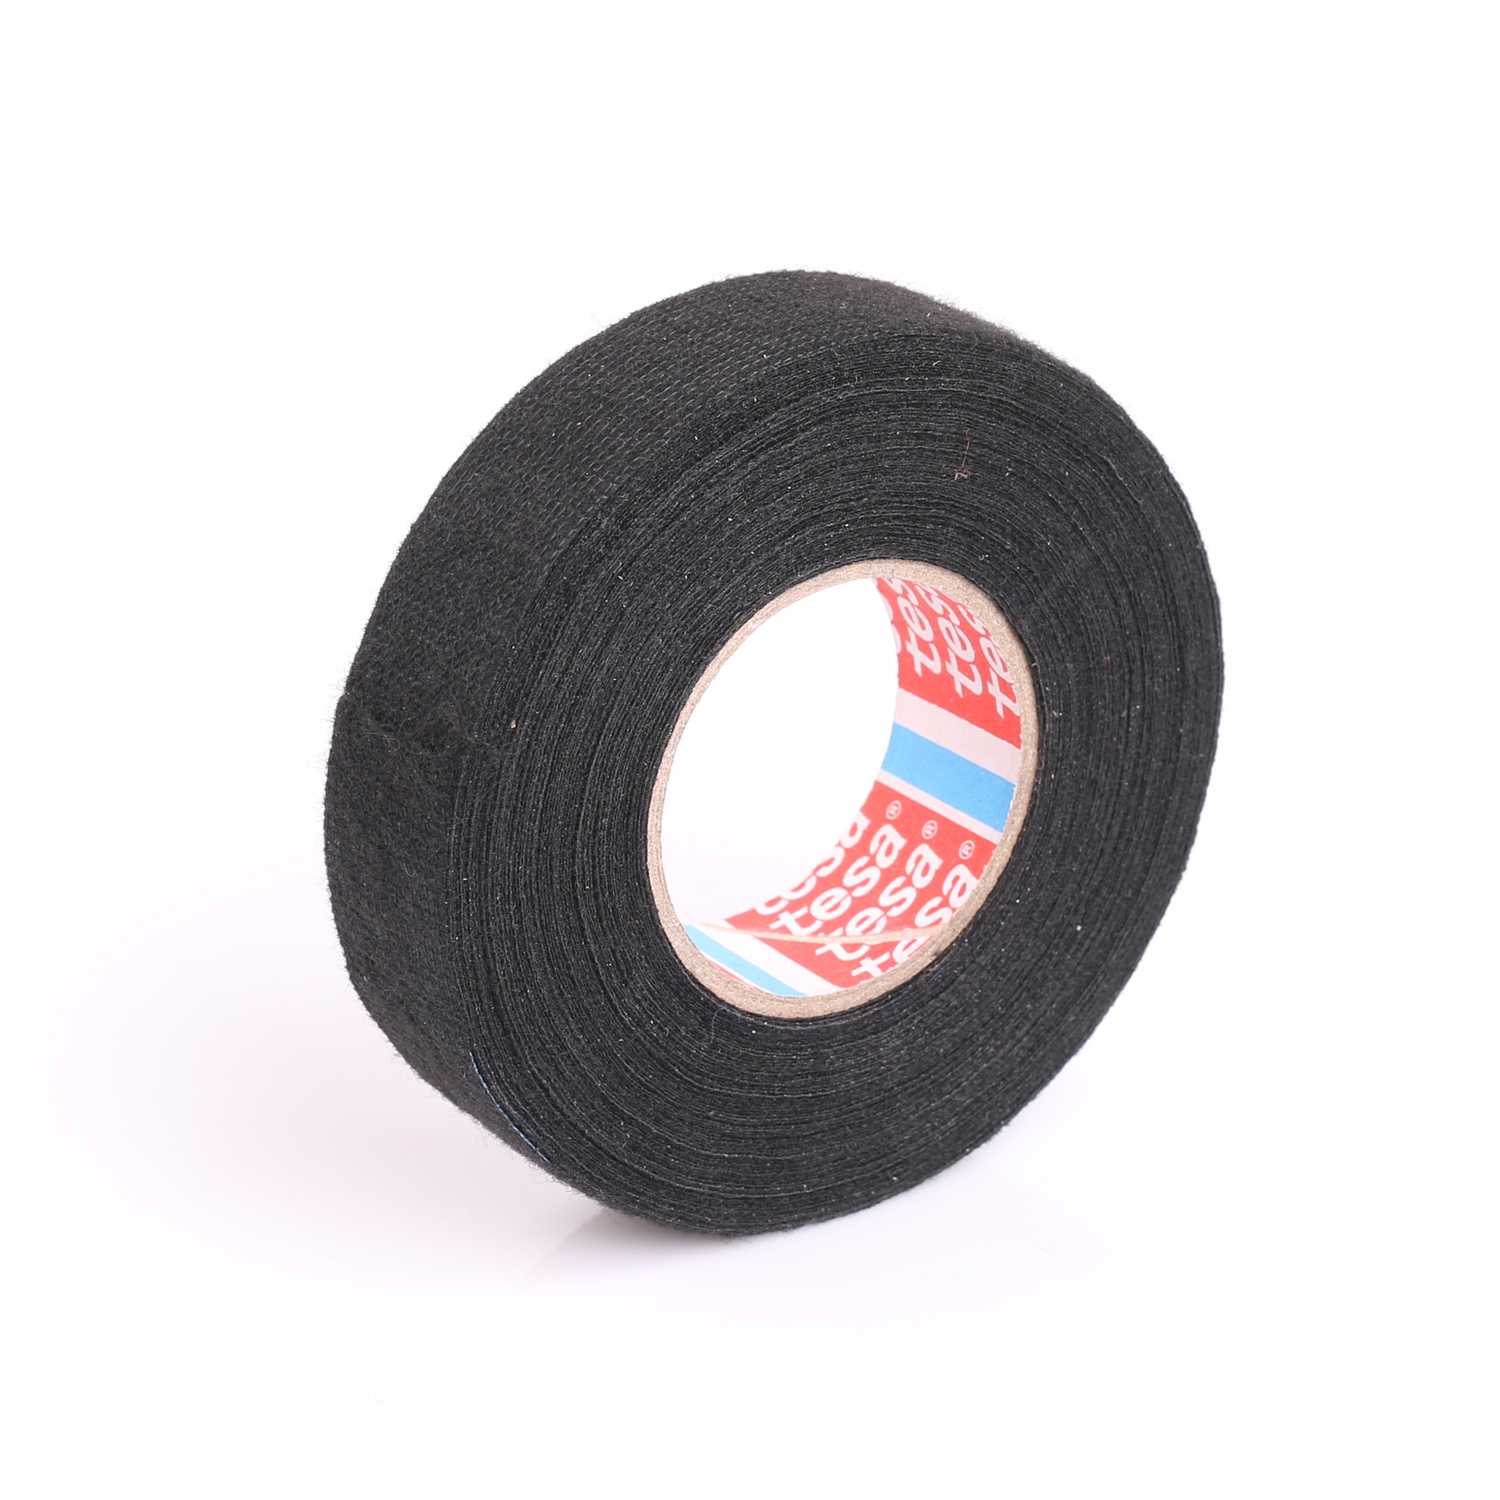 Tape for cables